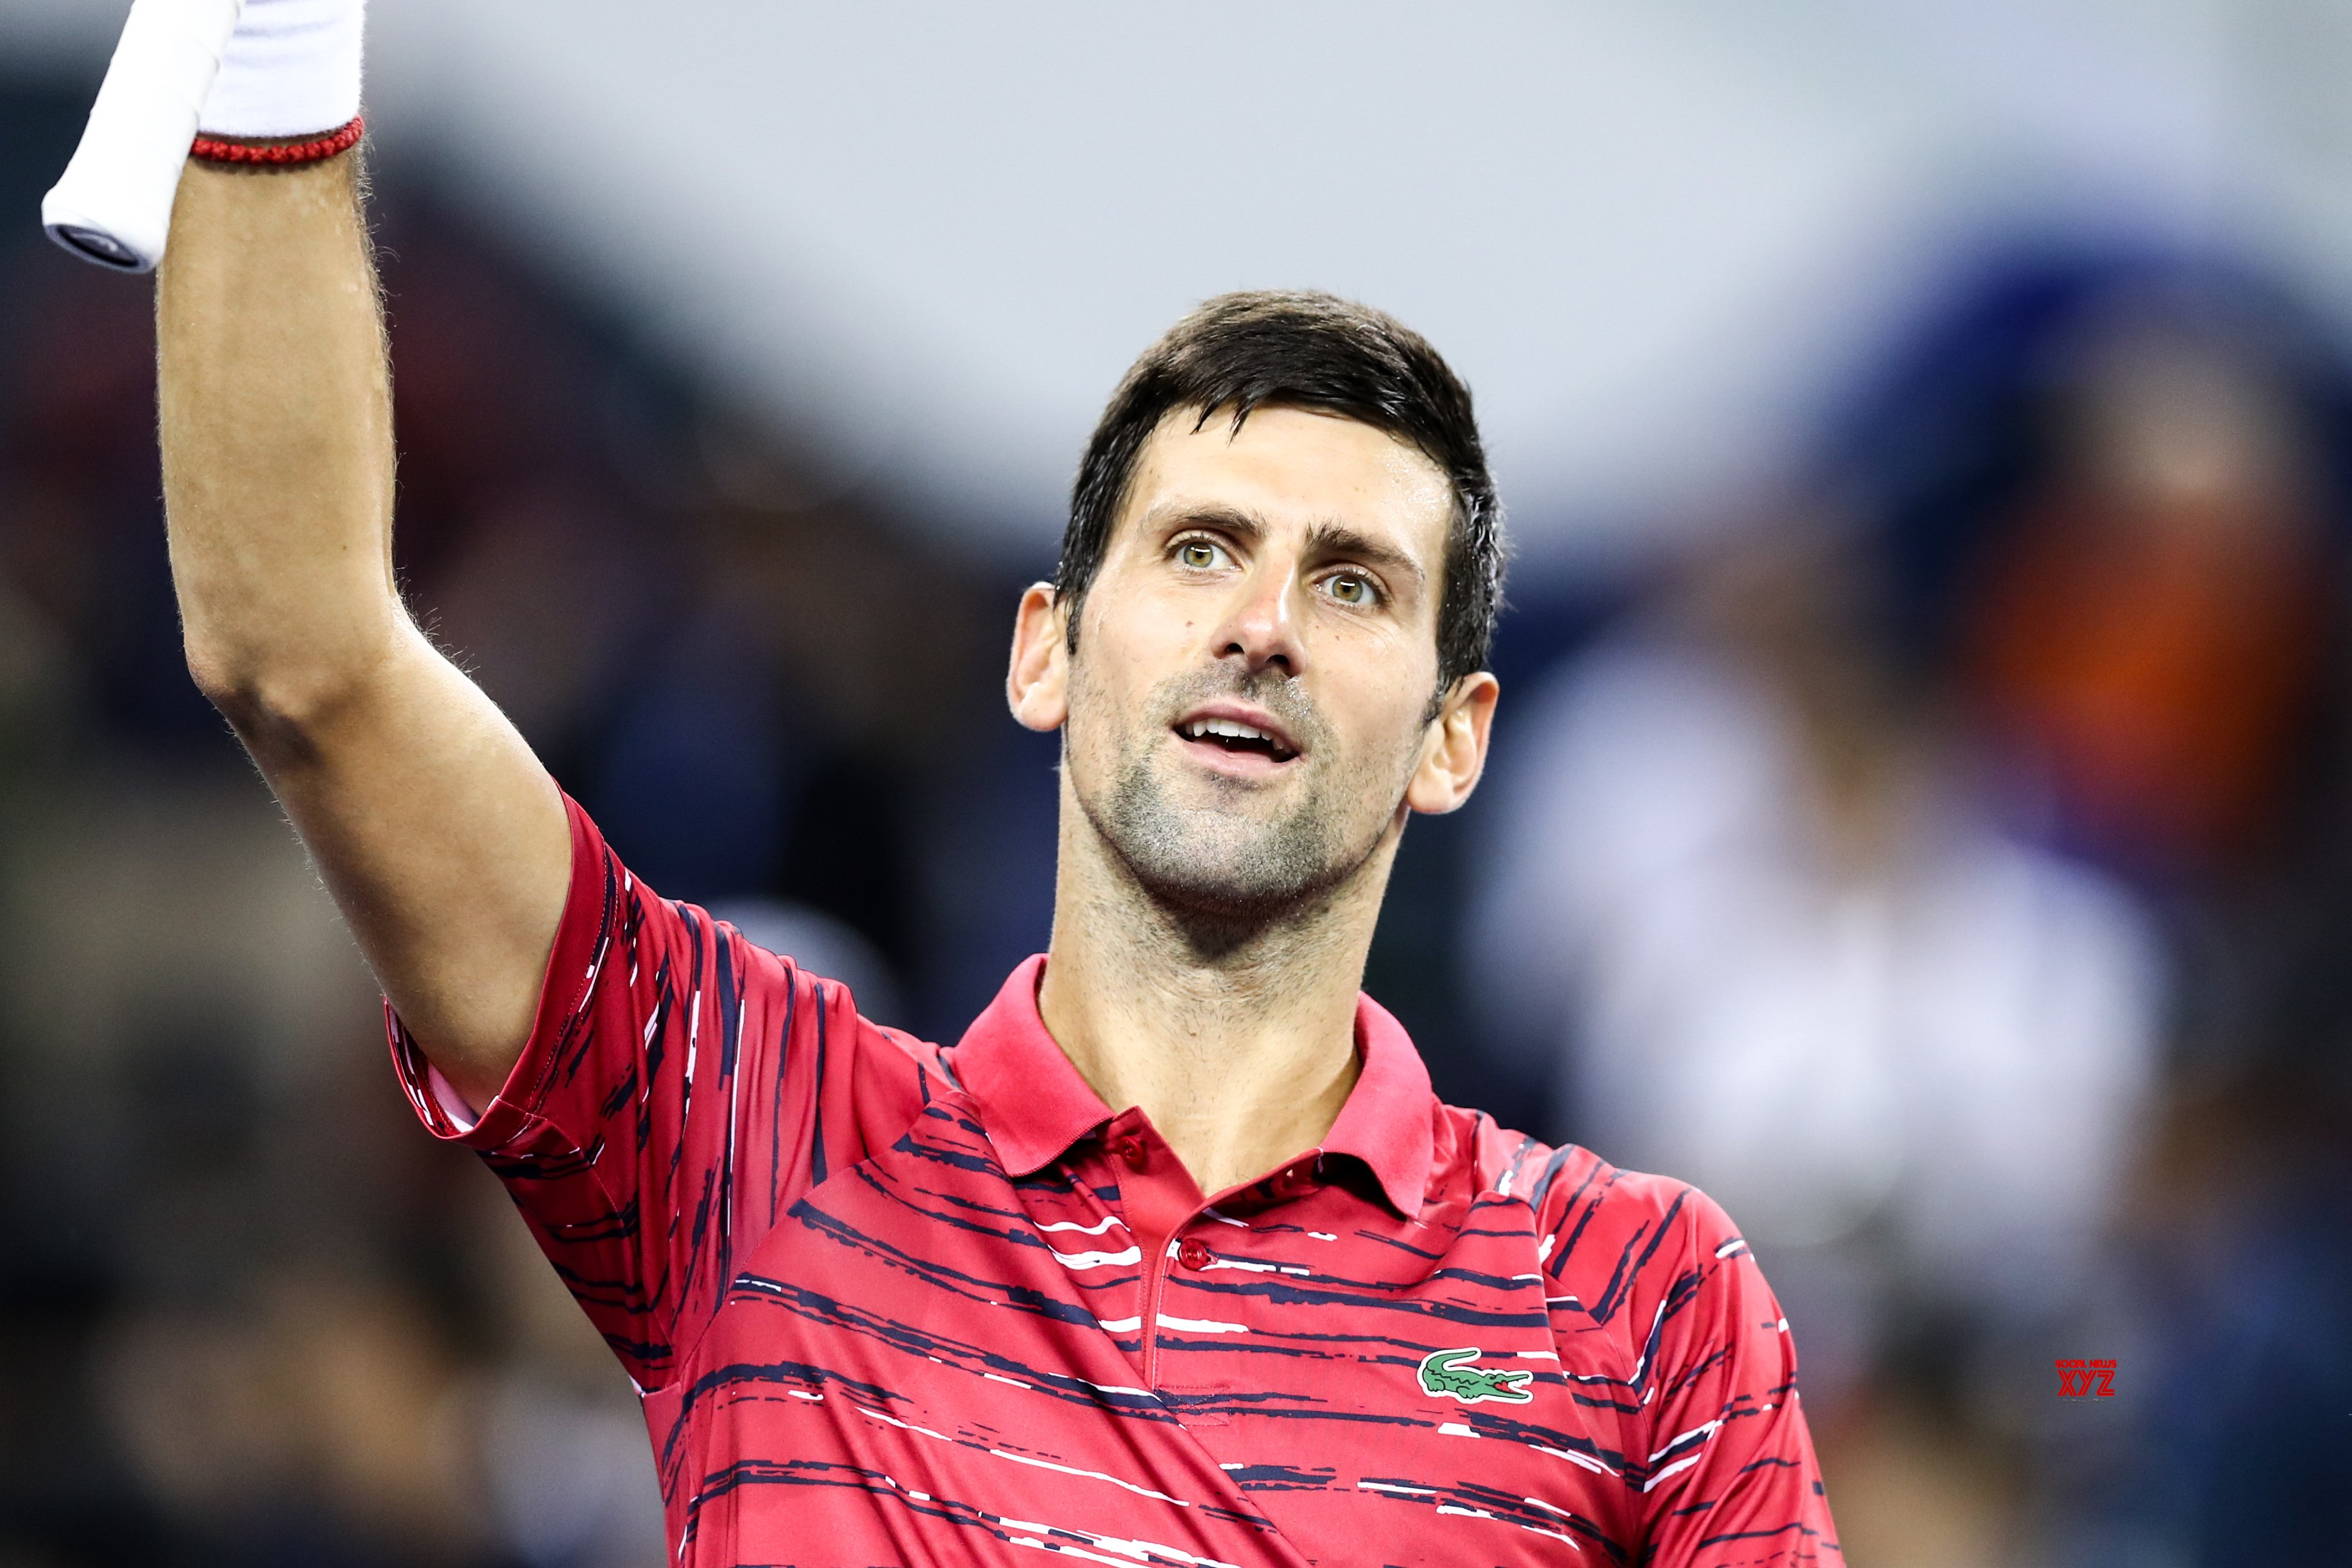 ATP Finals: Djokovic wins his opening match, Federer loses